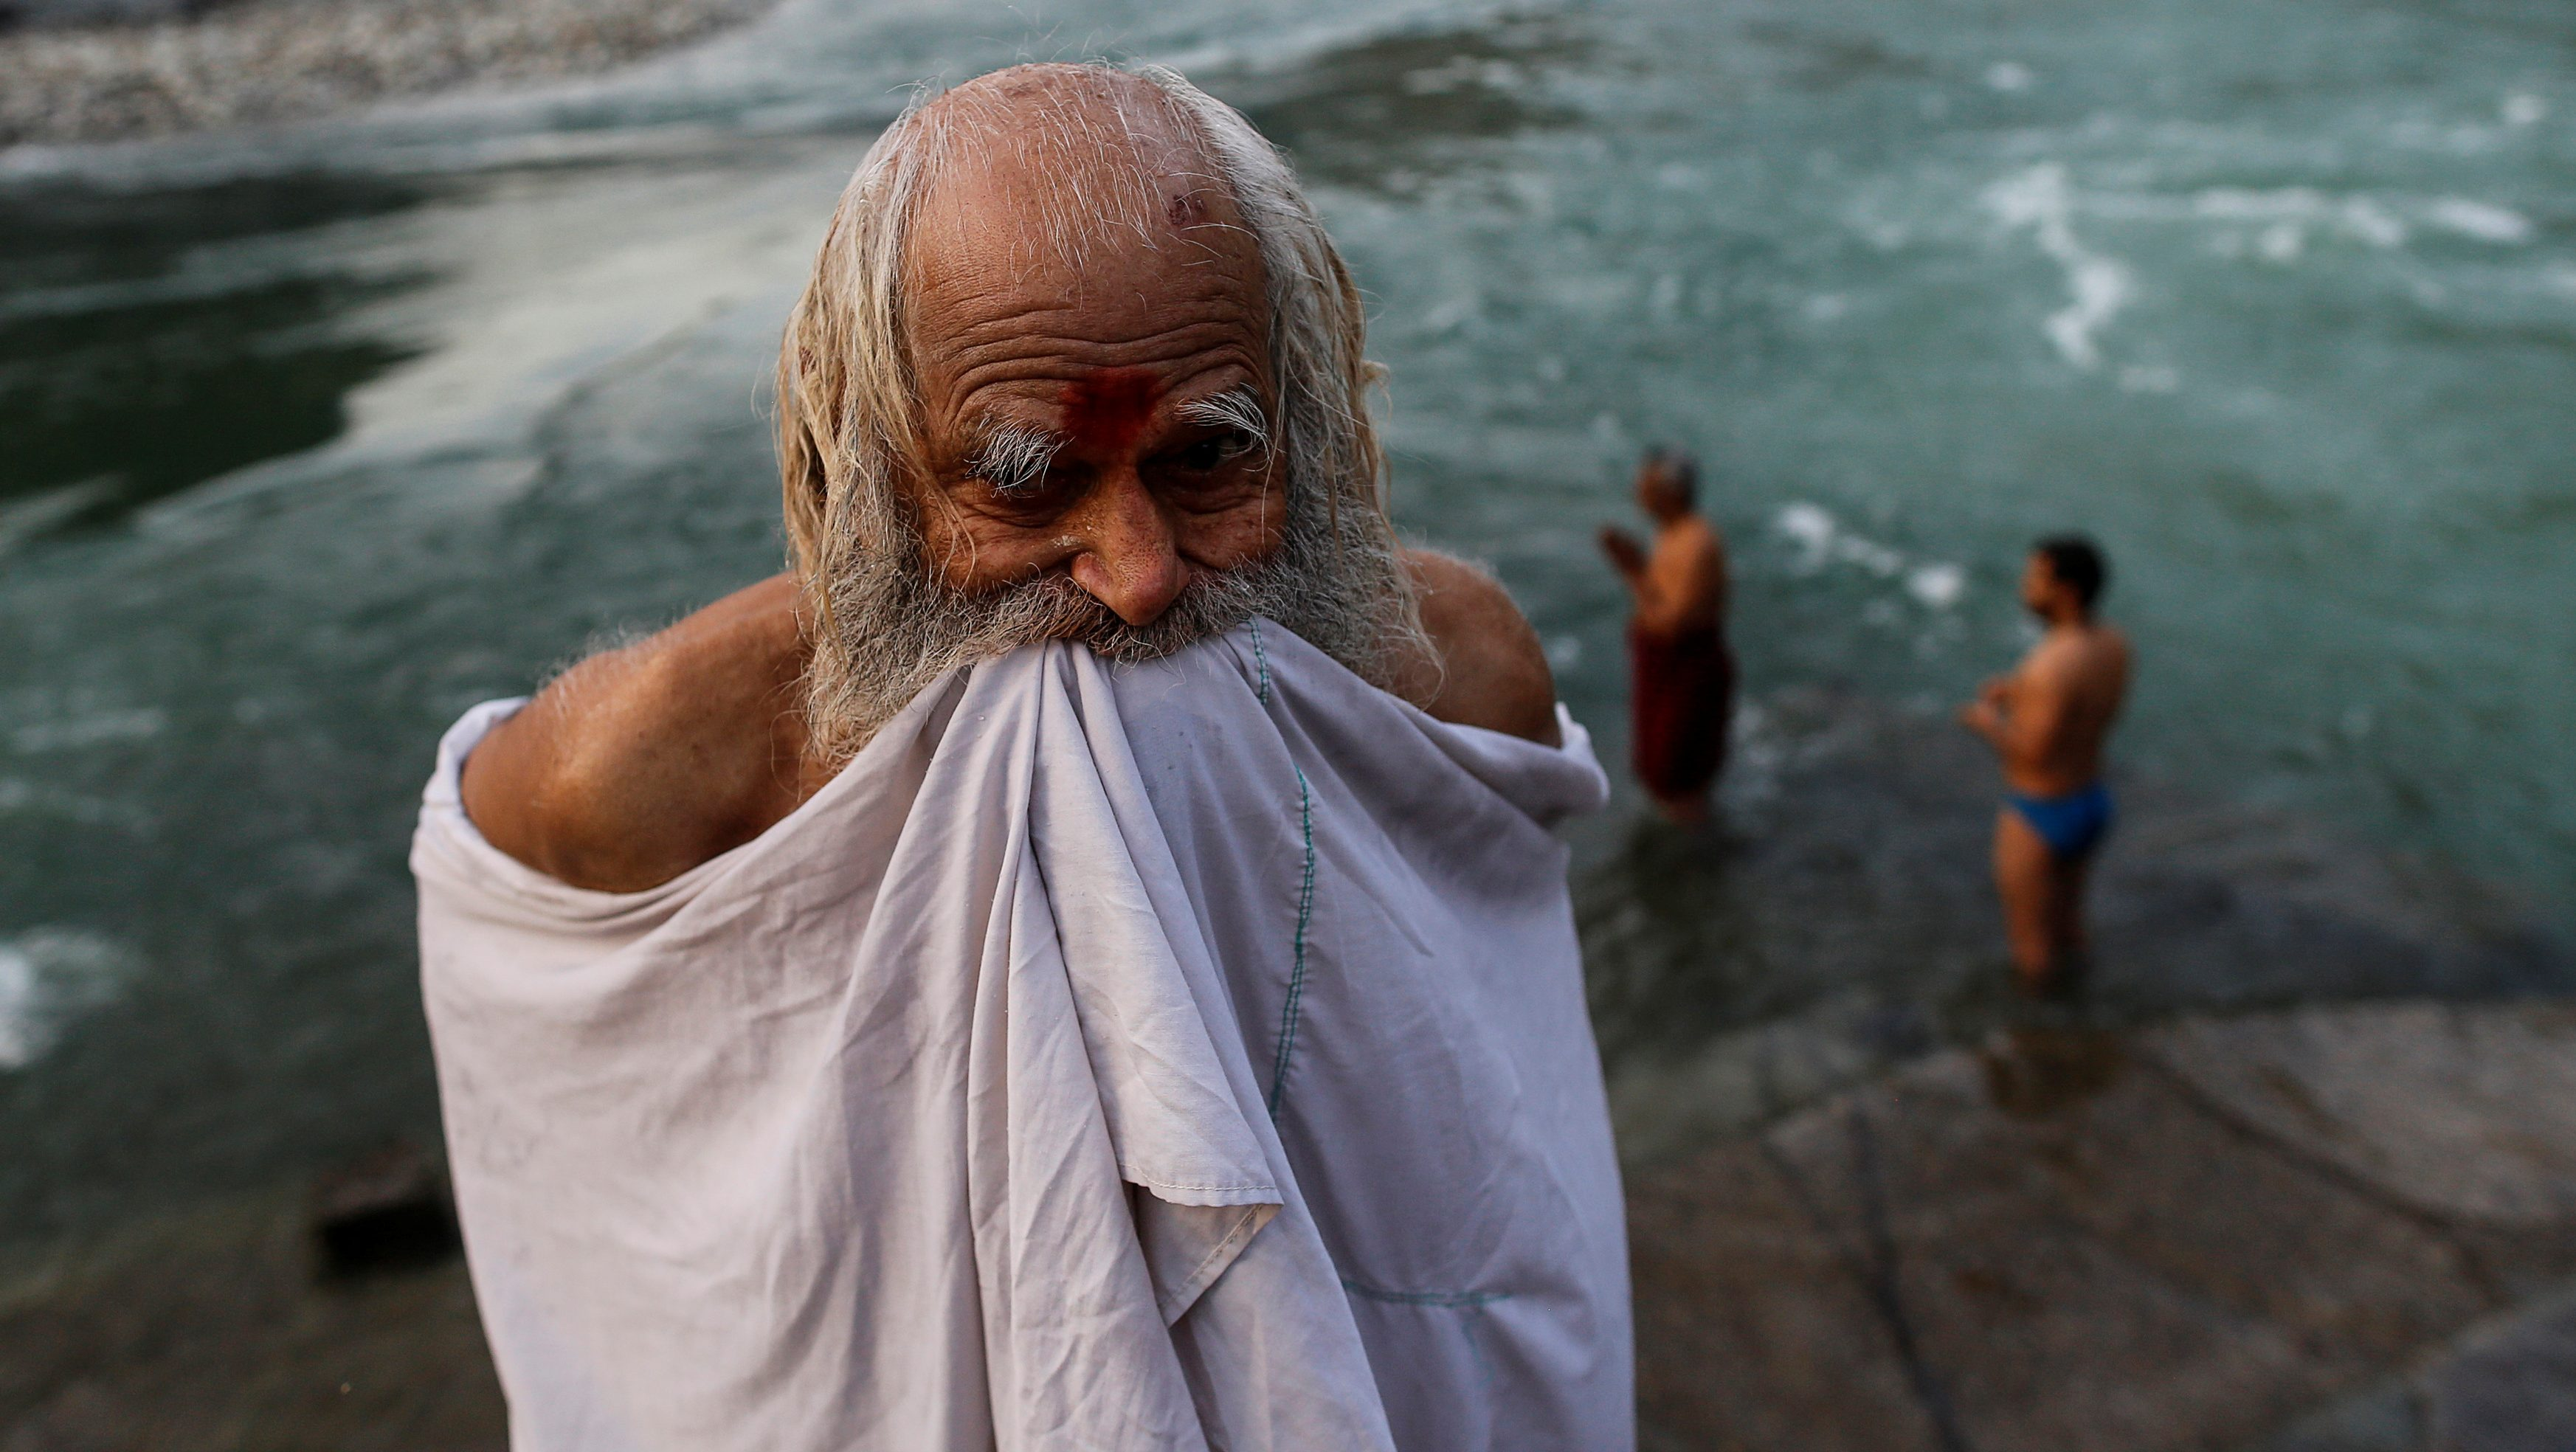 """A Hindu devotee holds up his clothes after taking a dip in the river Ganges in Devprayag, India, March 29, 2017. REUTERS/Danish Siddiqui  SEARCH """"SIDDIQUI GANGES"""" FOR THIS STORY. SEARCH """"WIDER IMAGE"""" FOR ALL STORIES. - RTX3ASE2"""